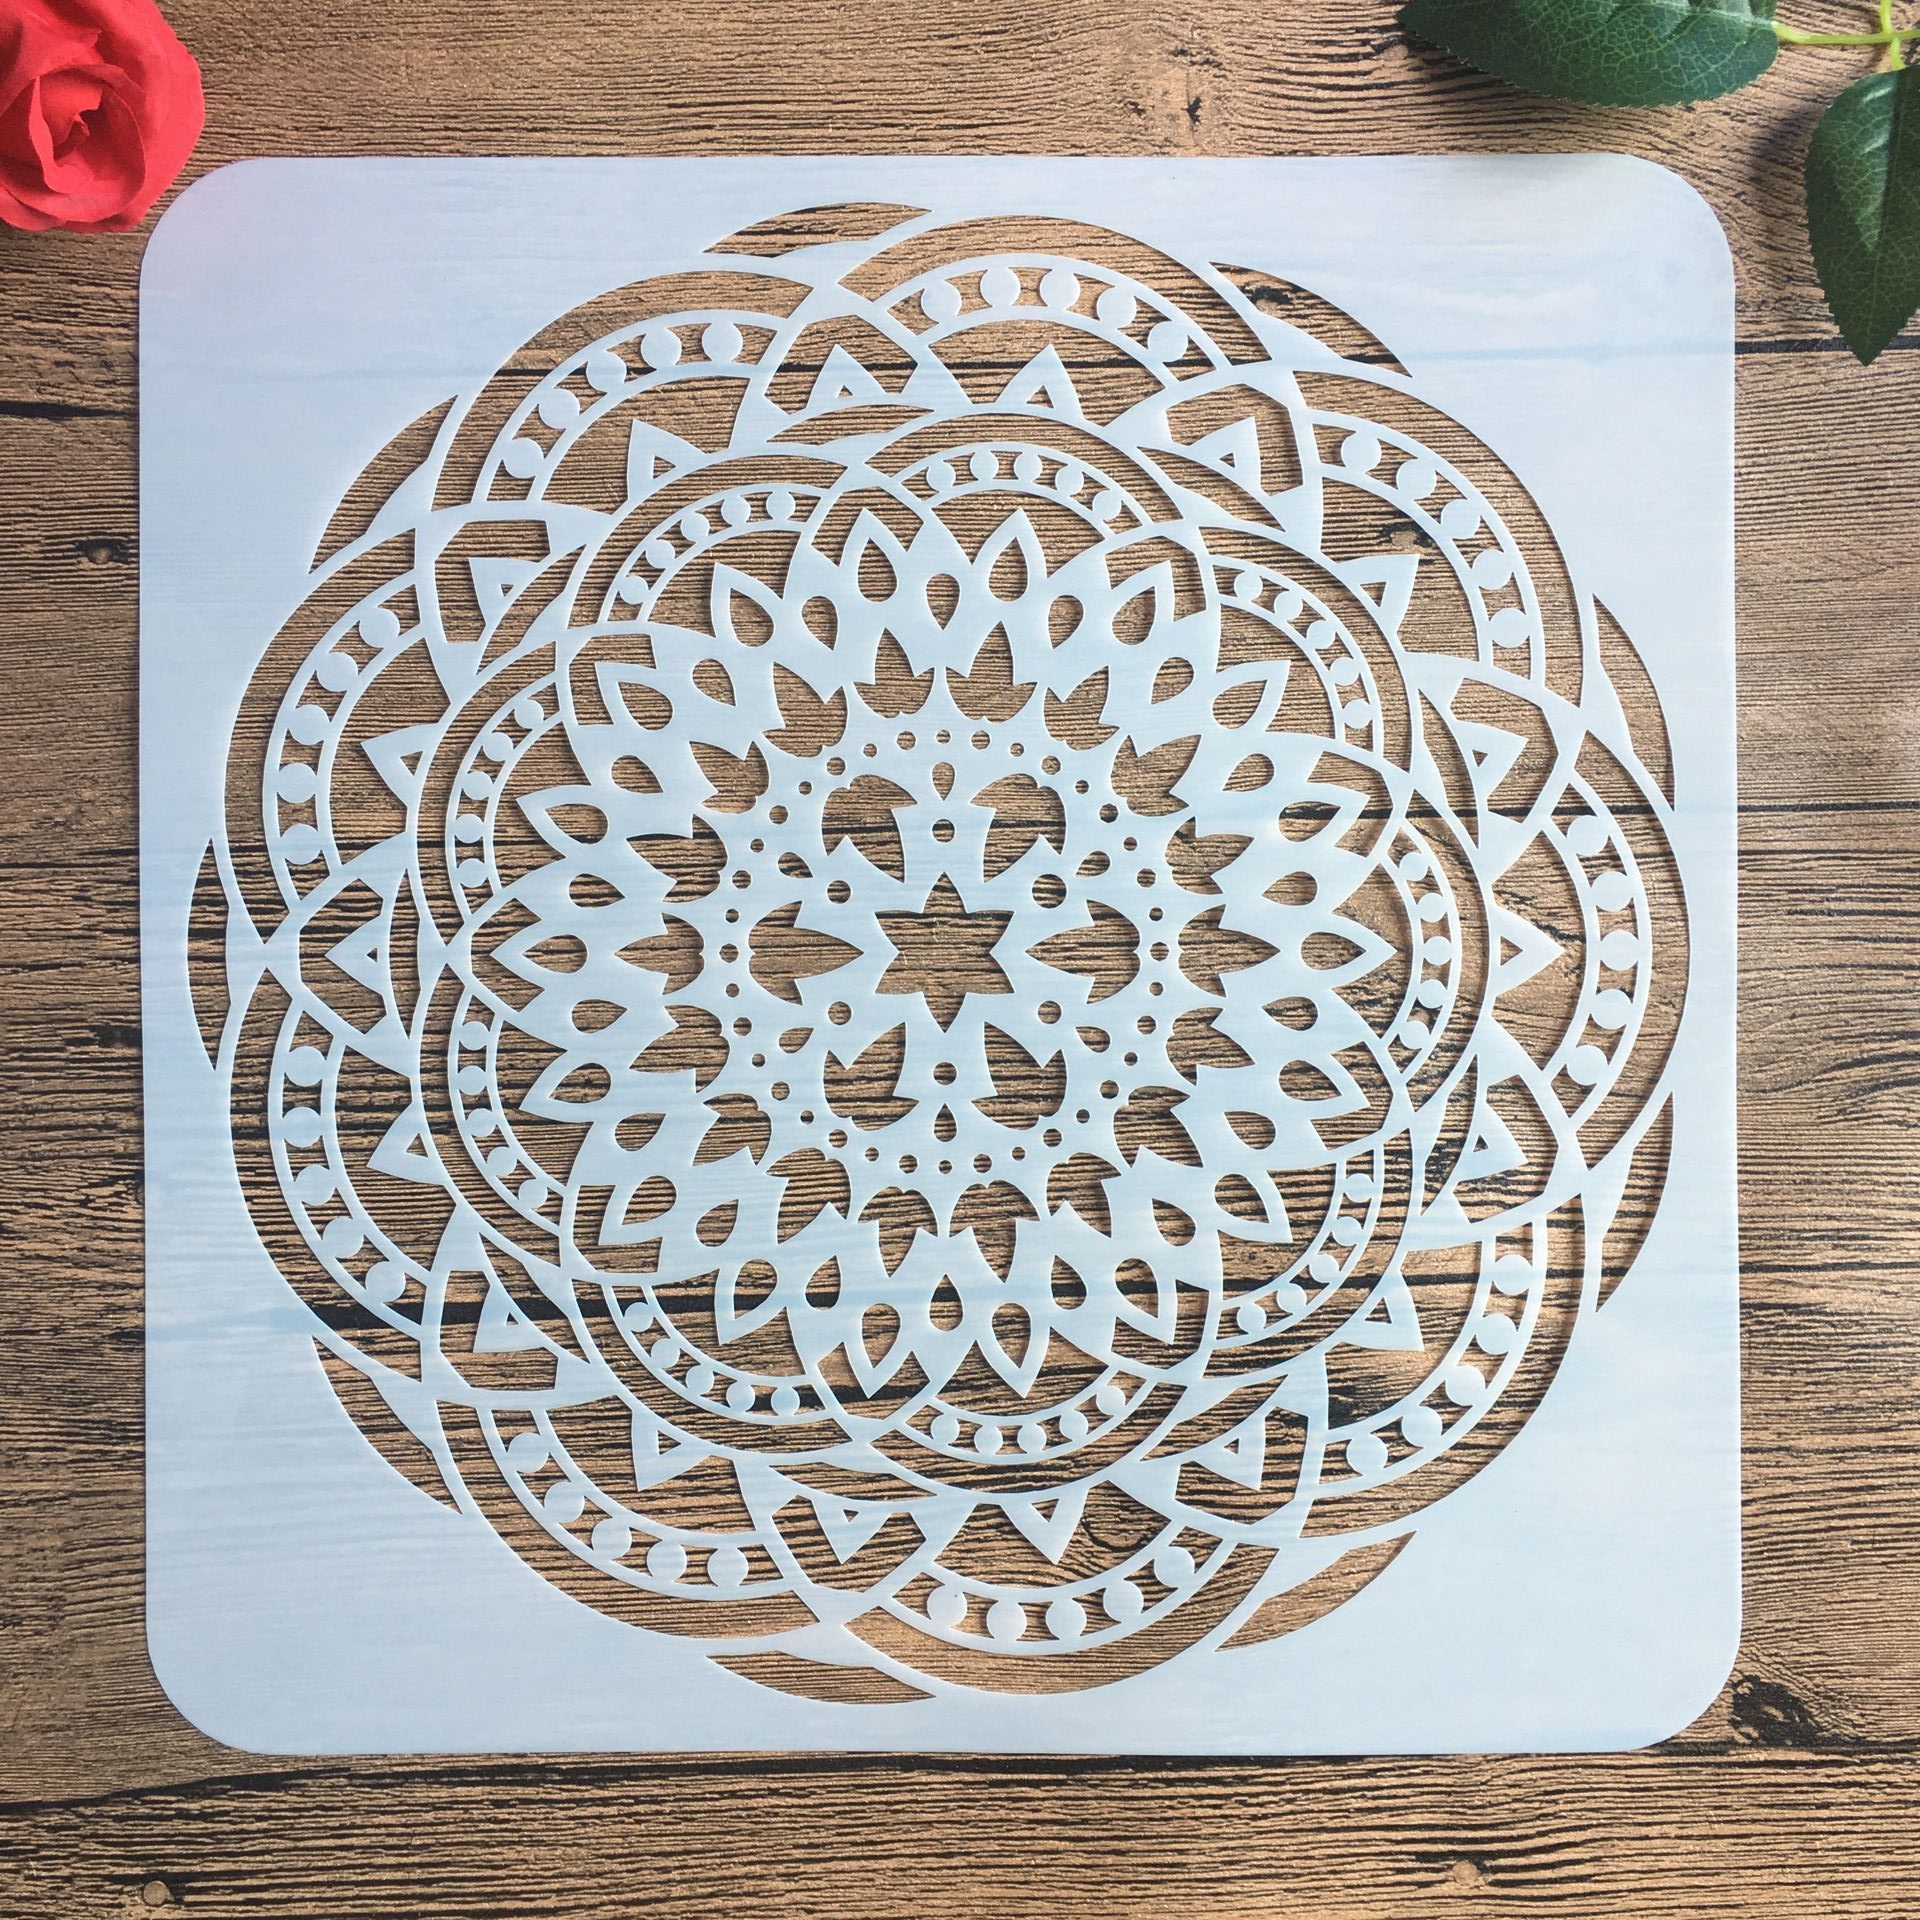 30 * 30 Cm Large Round Flower Mandala Diy Stencil Painting Scrapbook Coloring Engraving Album Decoration Template Stencil -b